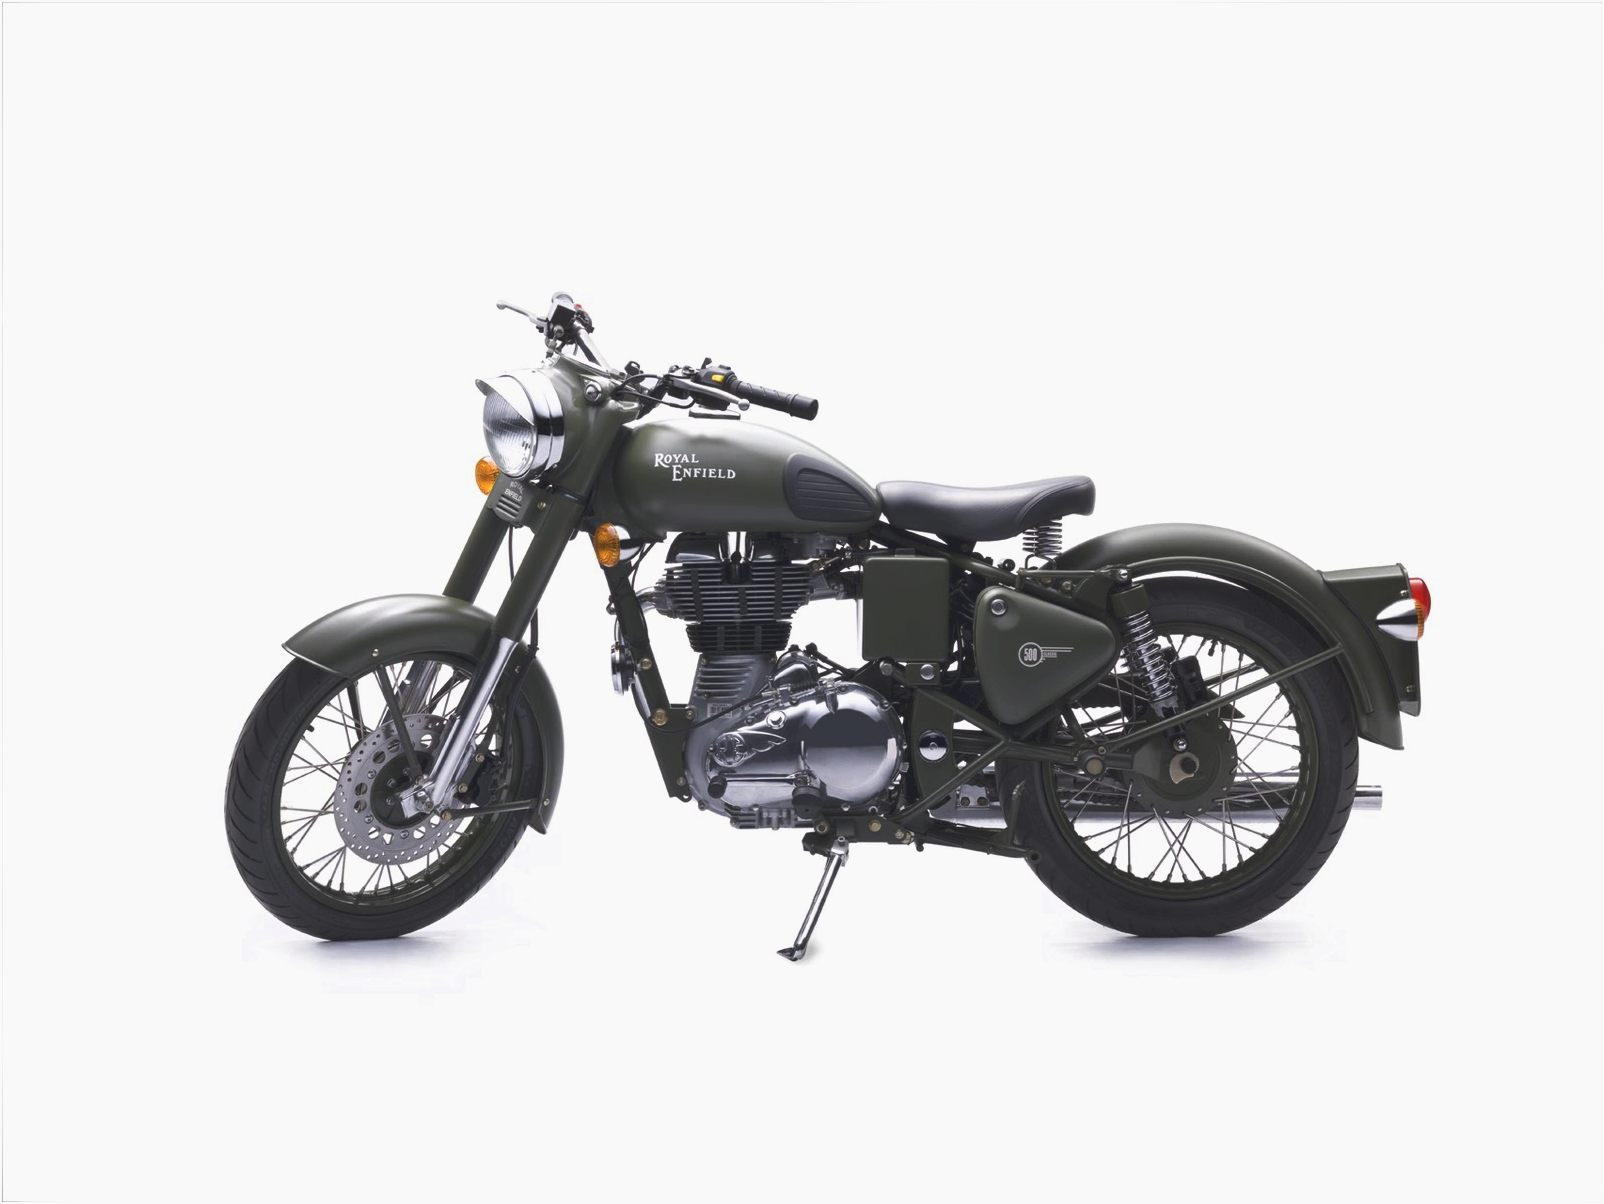 Royal Enfield Bullet 500 Army images #122713